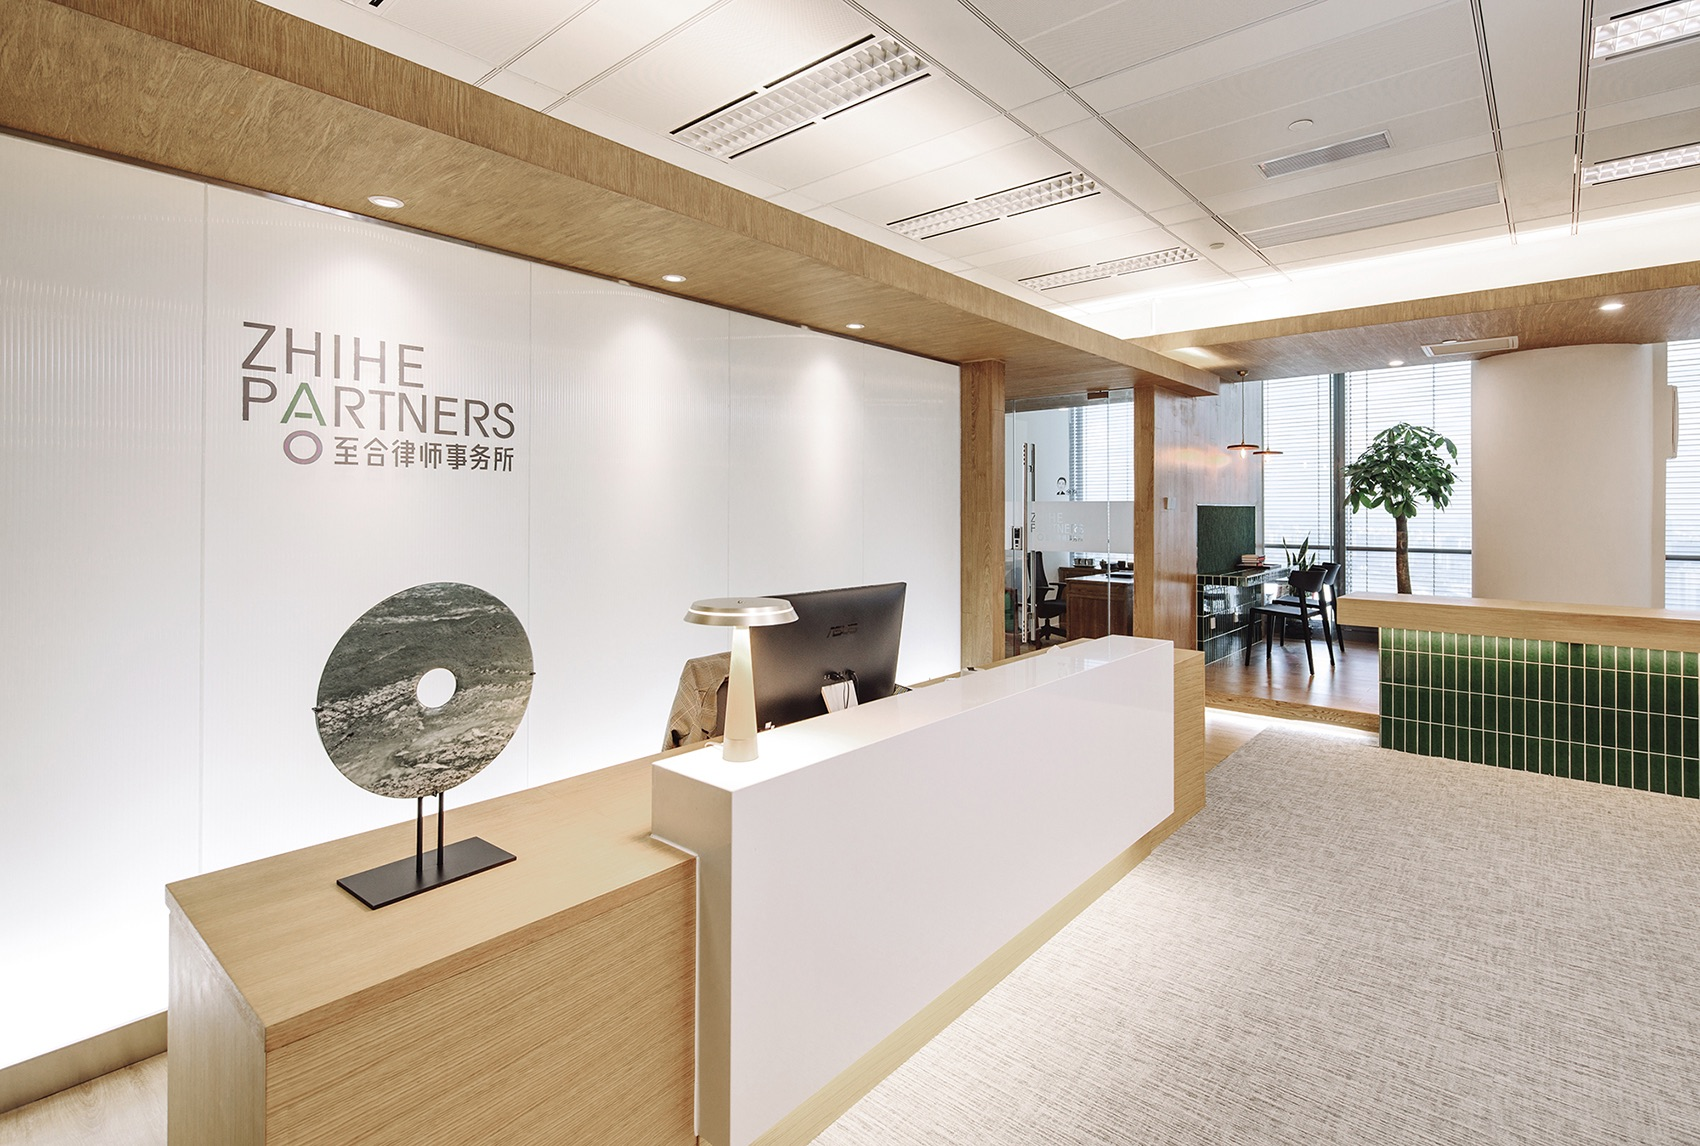 zhihe-partners-office-2